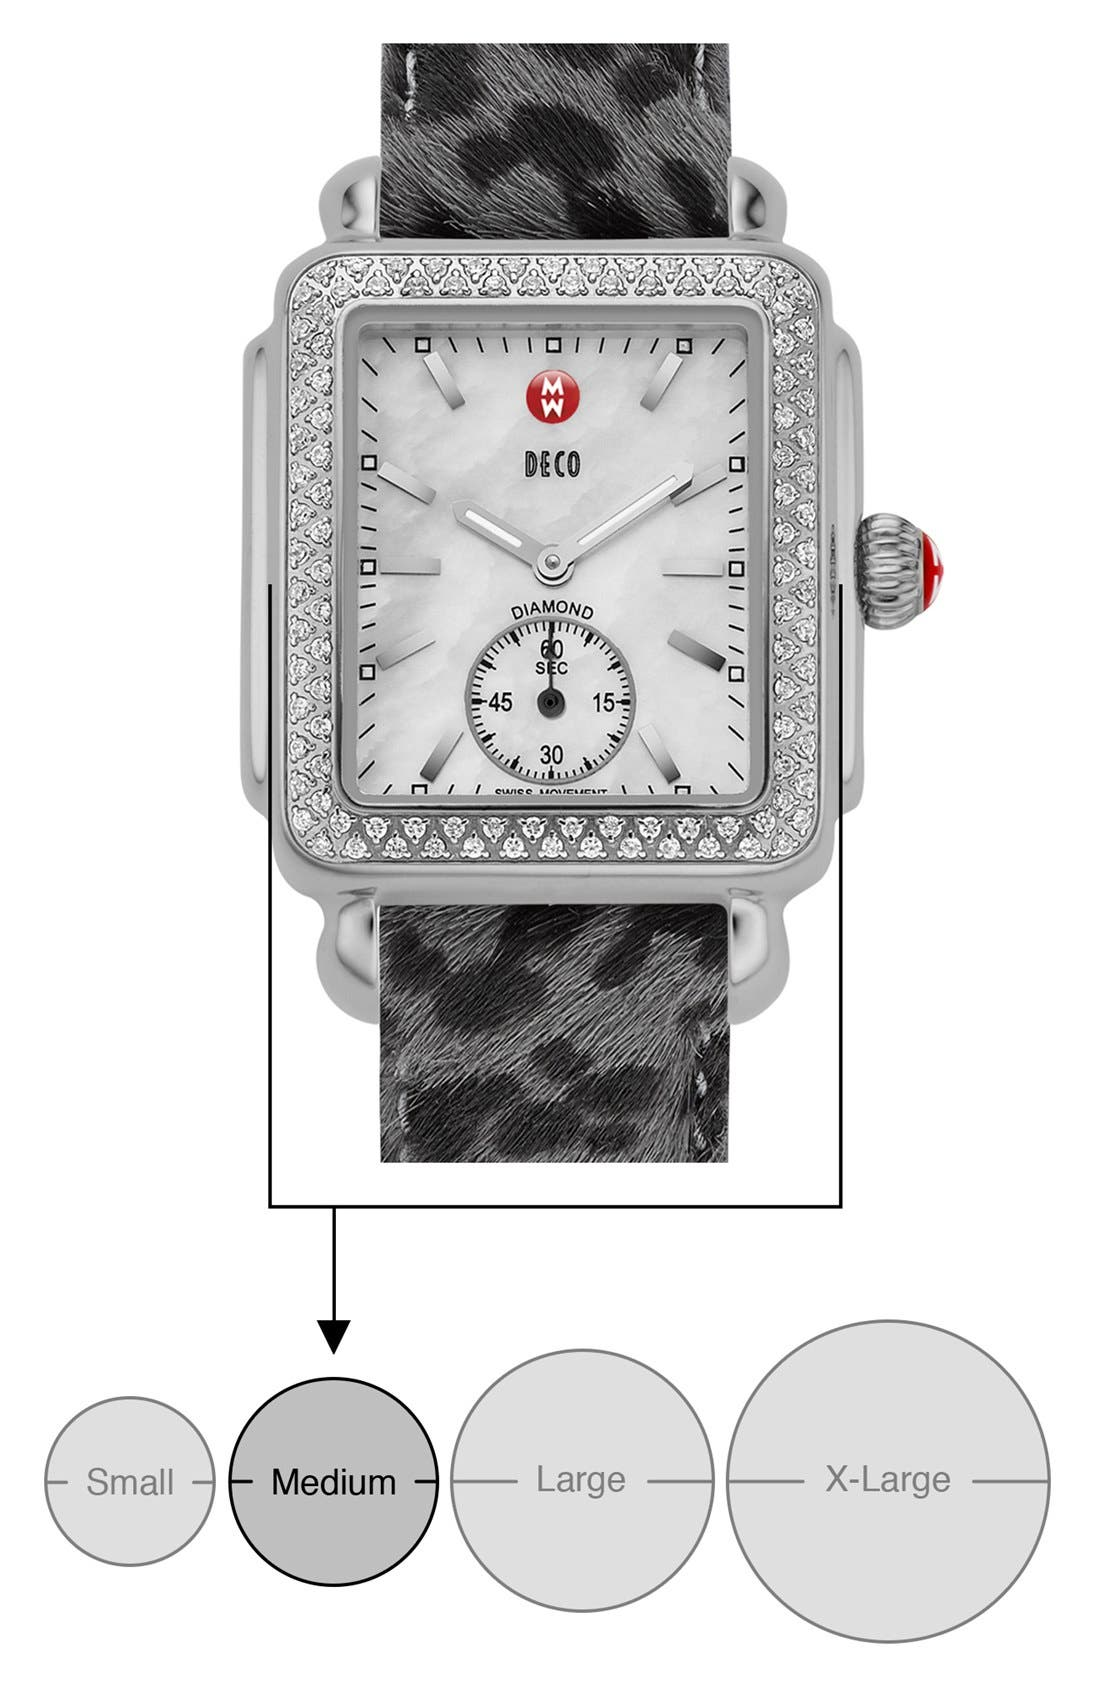 Deco 16 Diamond Watch Head, 29mm x 31mm,                             Alternate thumbnail 8, color,                             SILVER